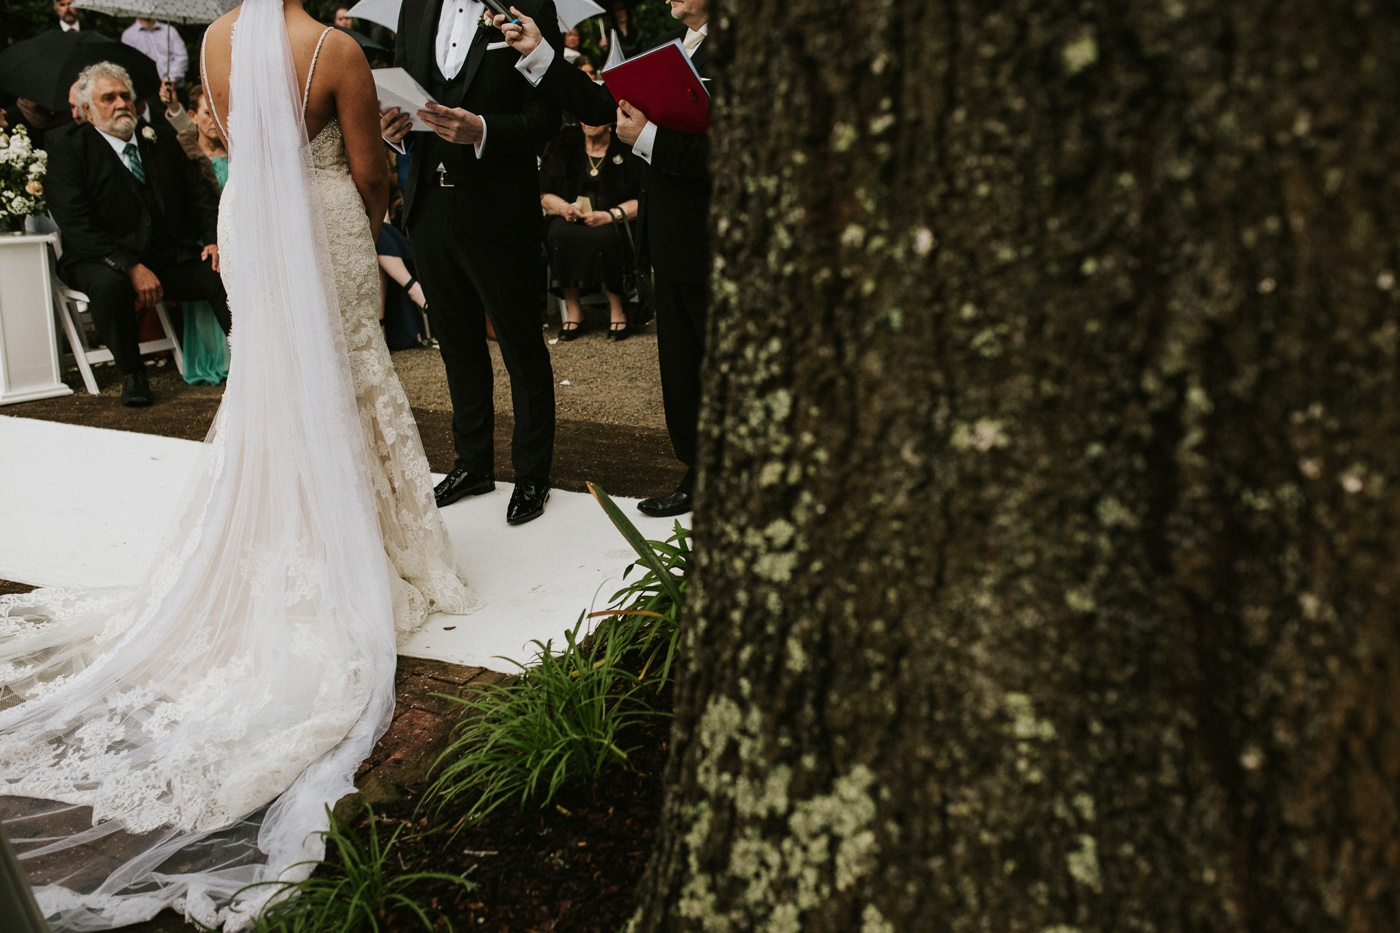 wesleybianca_dandenongs-sherbrooke-poets-lane-wedding_melbourne-quirky-fun-candid-wedding-photography_36